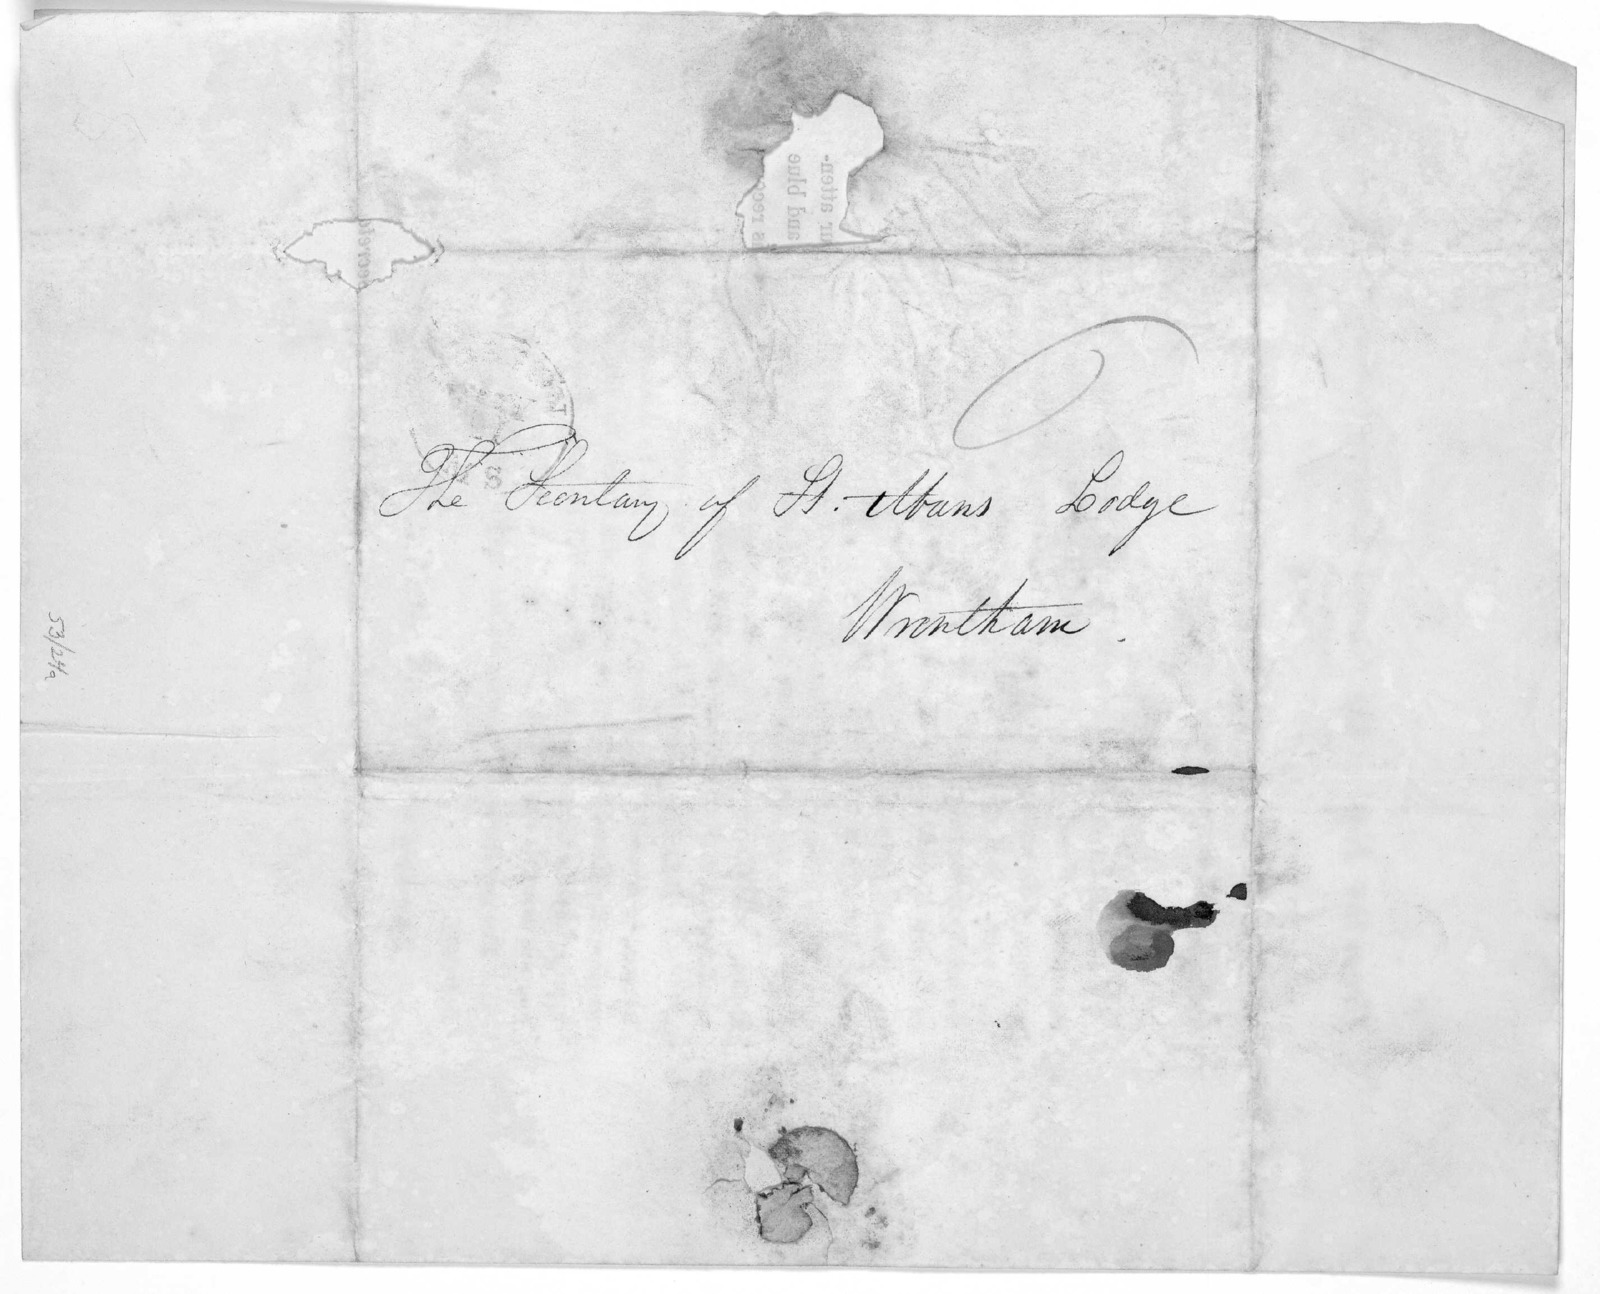 From the East of the Grand Lodge of Massachusetts. This day of A. L. 5825. To the R. W. Master, W. Wardens and members of Lodge, the M, W. Grand Master sends greetings. [Regarding the laying of the corner stone of the Bunker Hill monument] [n. p